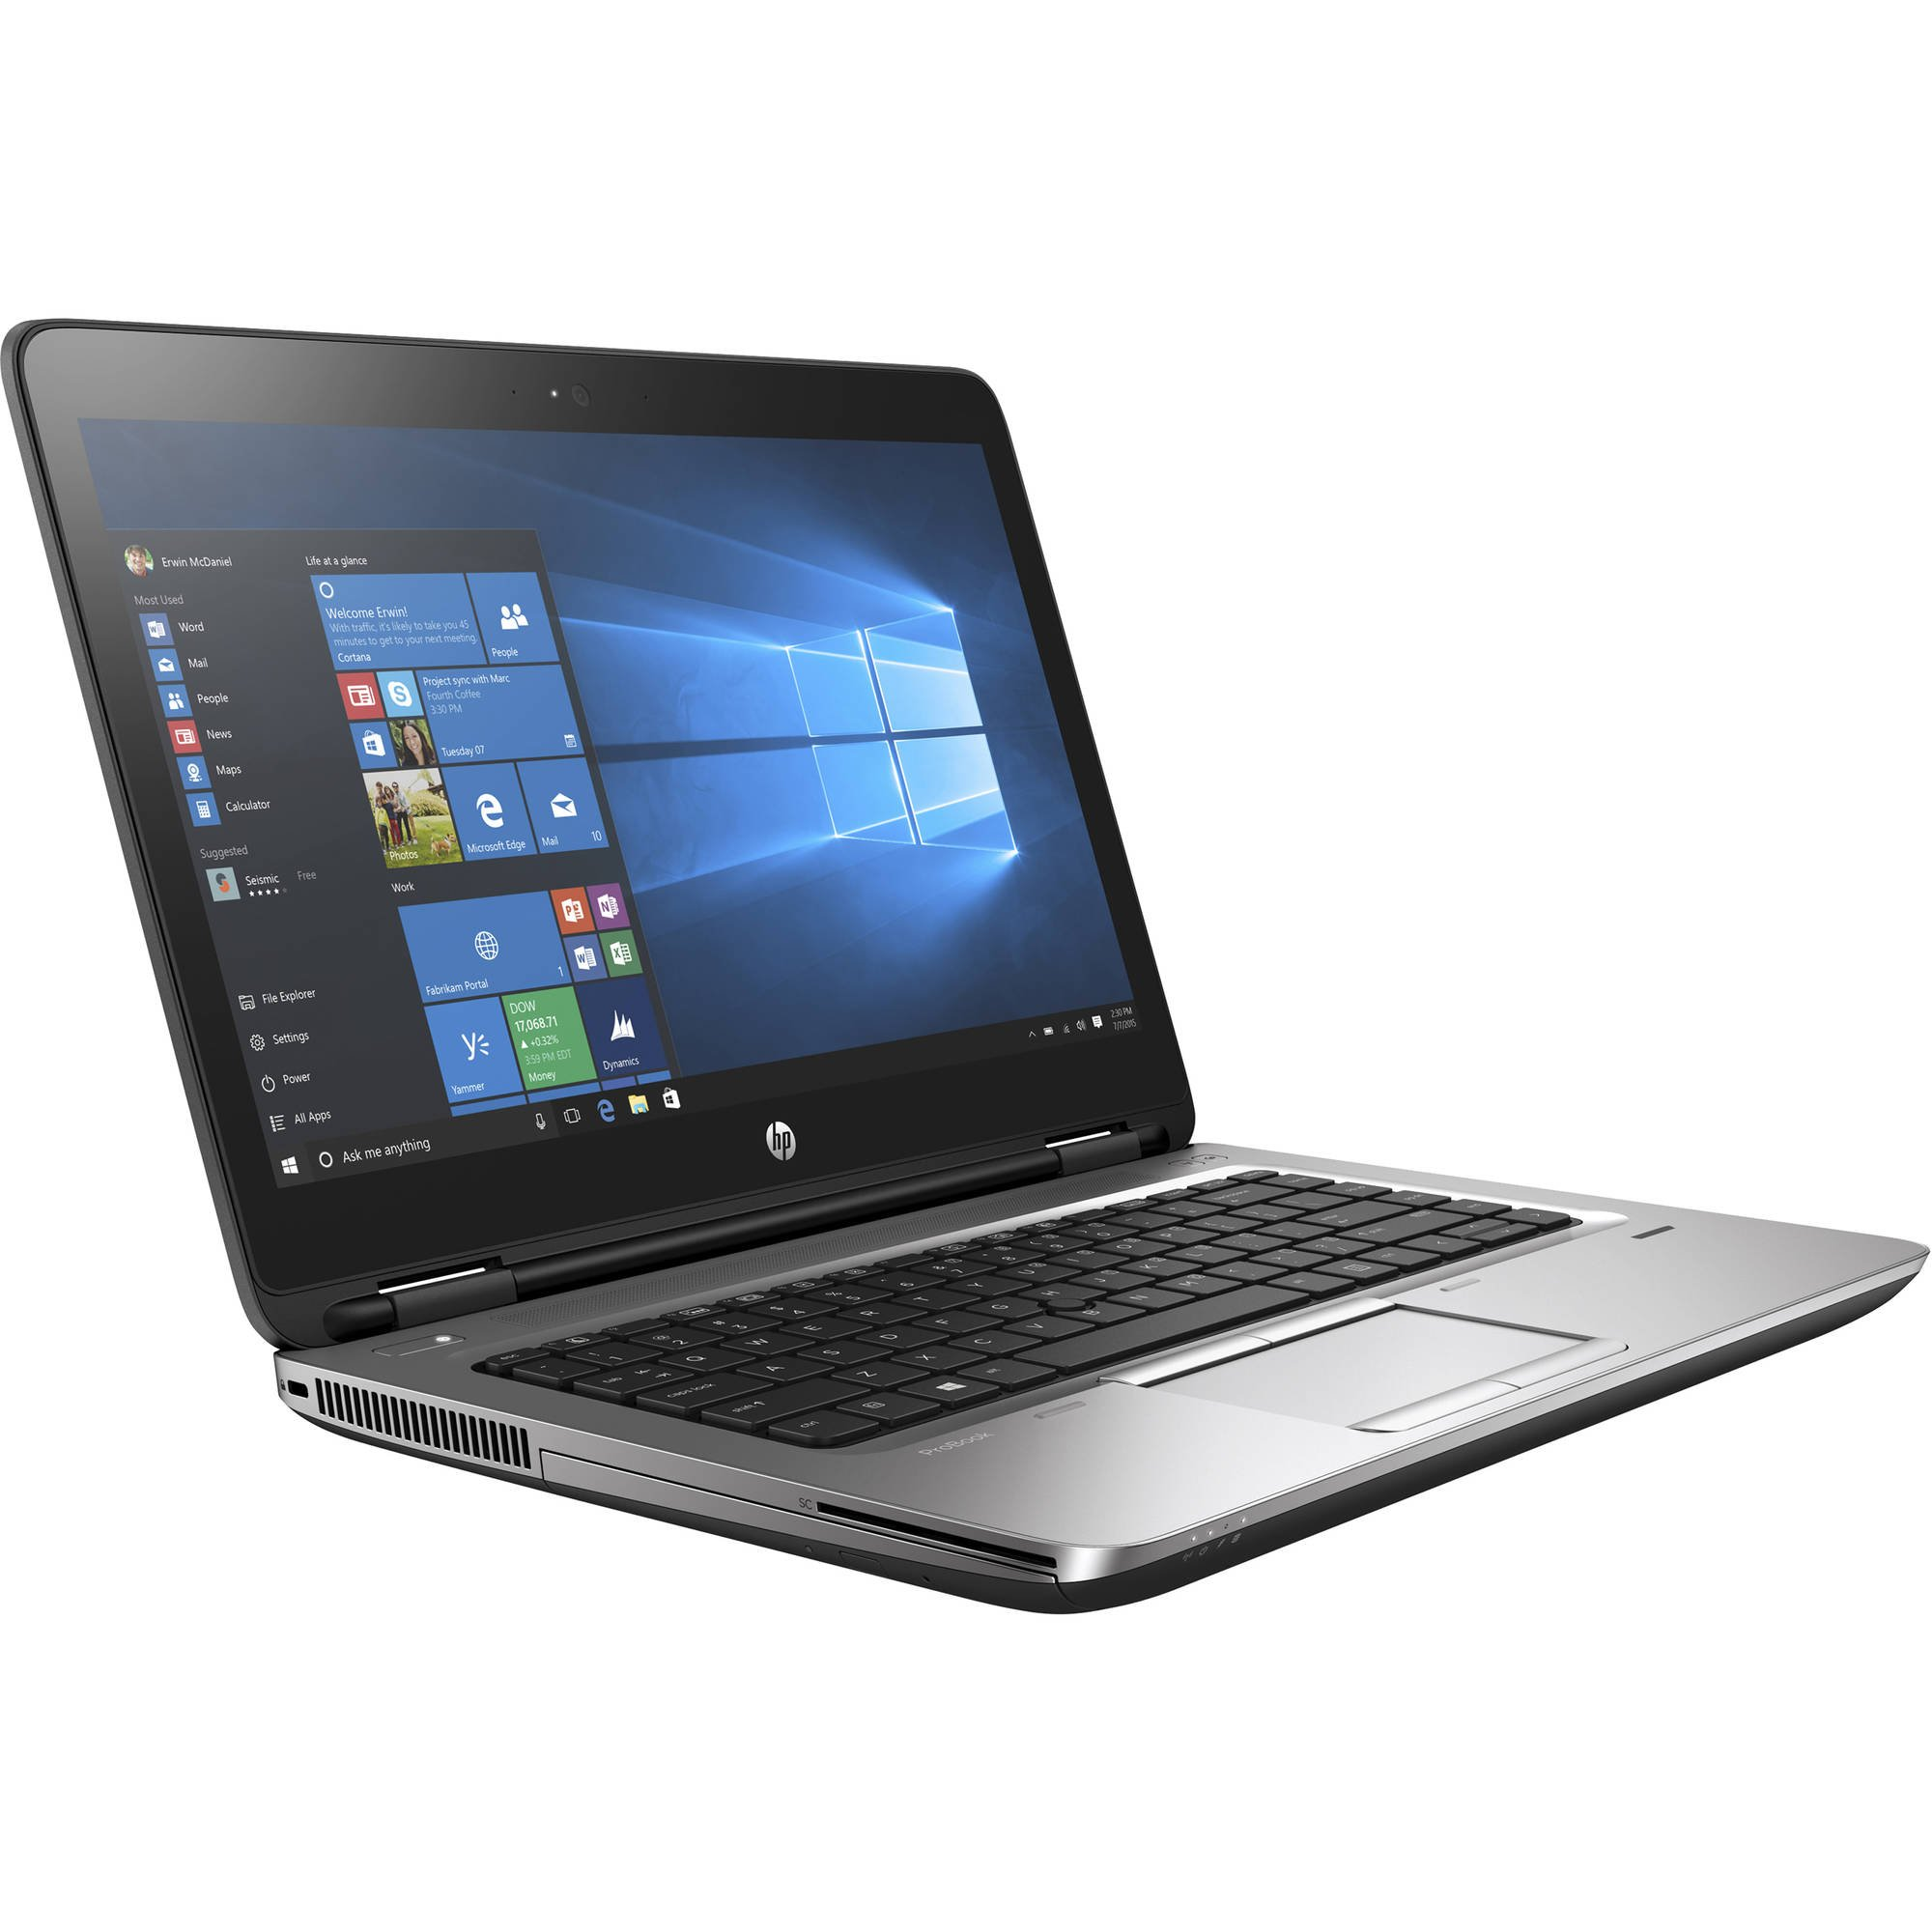 HP Probook 640 G3 Business Laptop: 14'' 1920x1080 FHD Intel Core i5-7200U, 256GB SSD, 8GB DDR4, Window 10 Professional 64-bit, Black